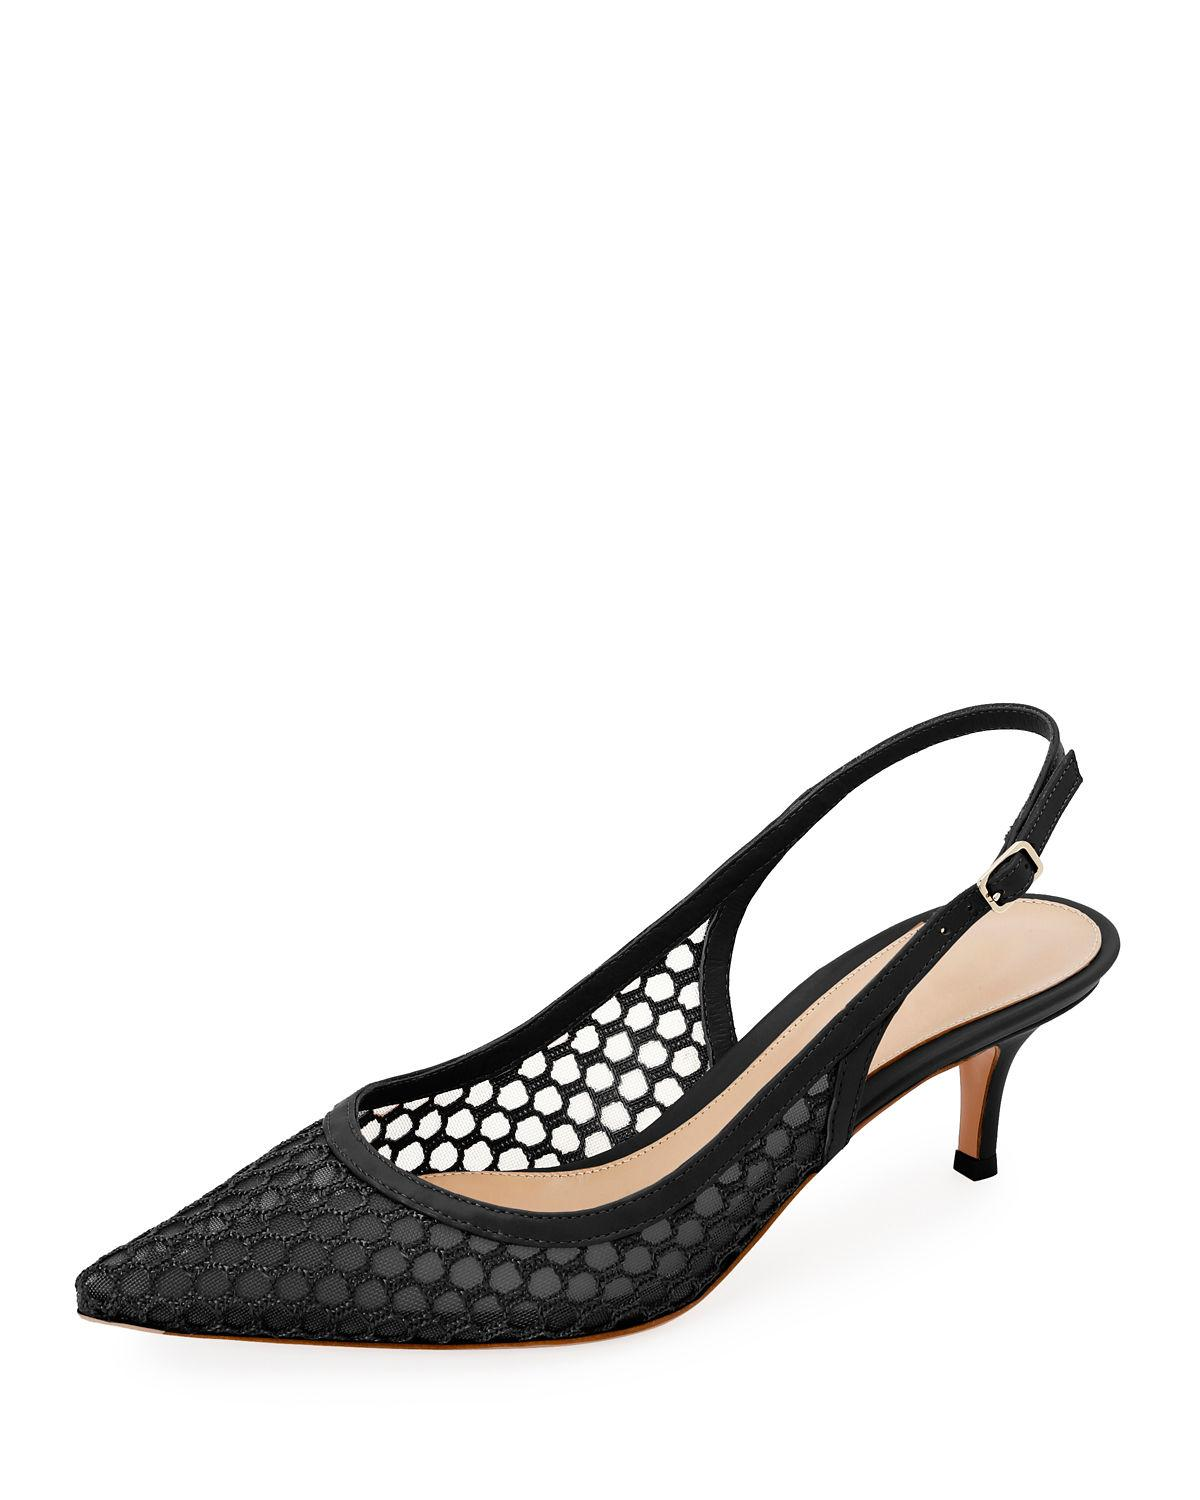 b2aeb54c6ce8 Lyst - Gianvito Rossi Slingback Fishnet Pointed Pumps in Black